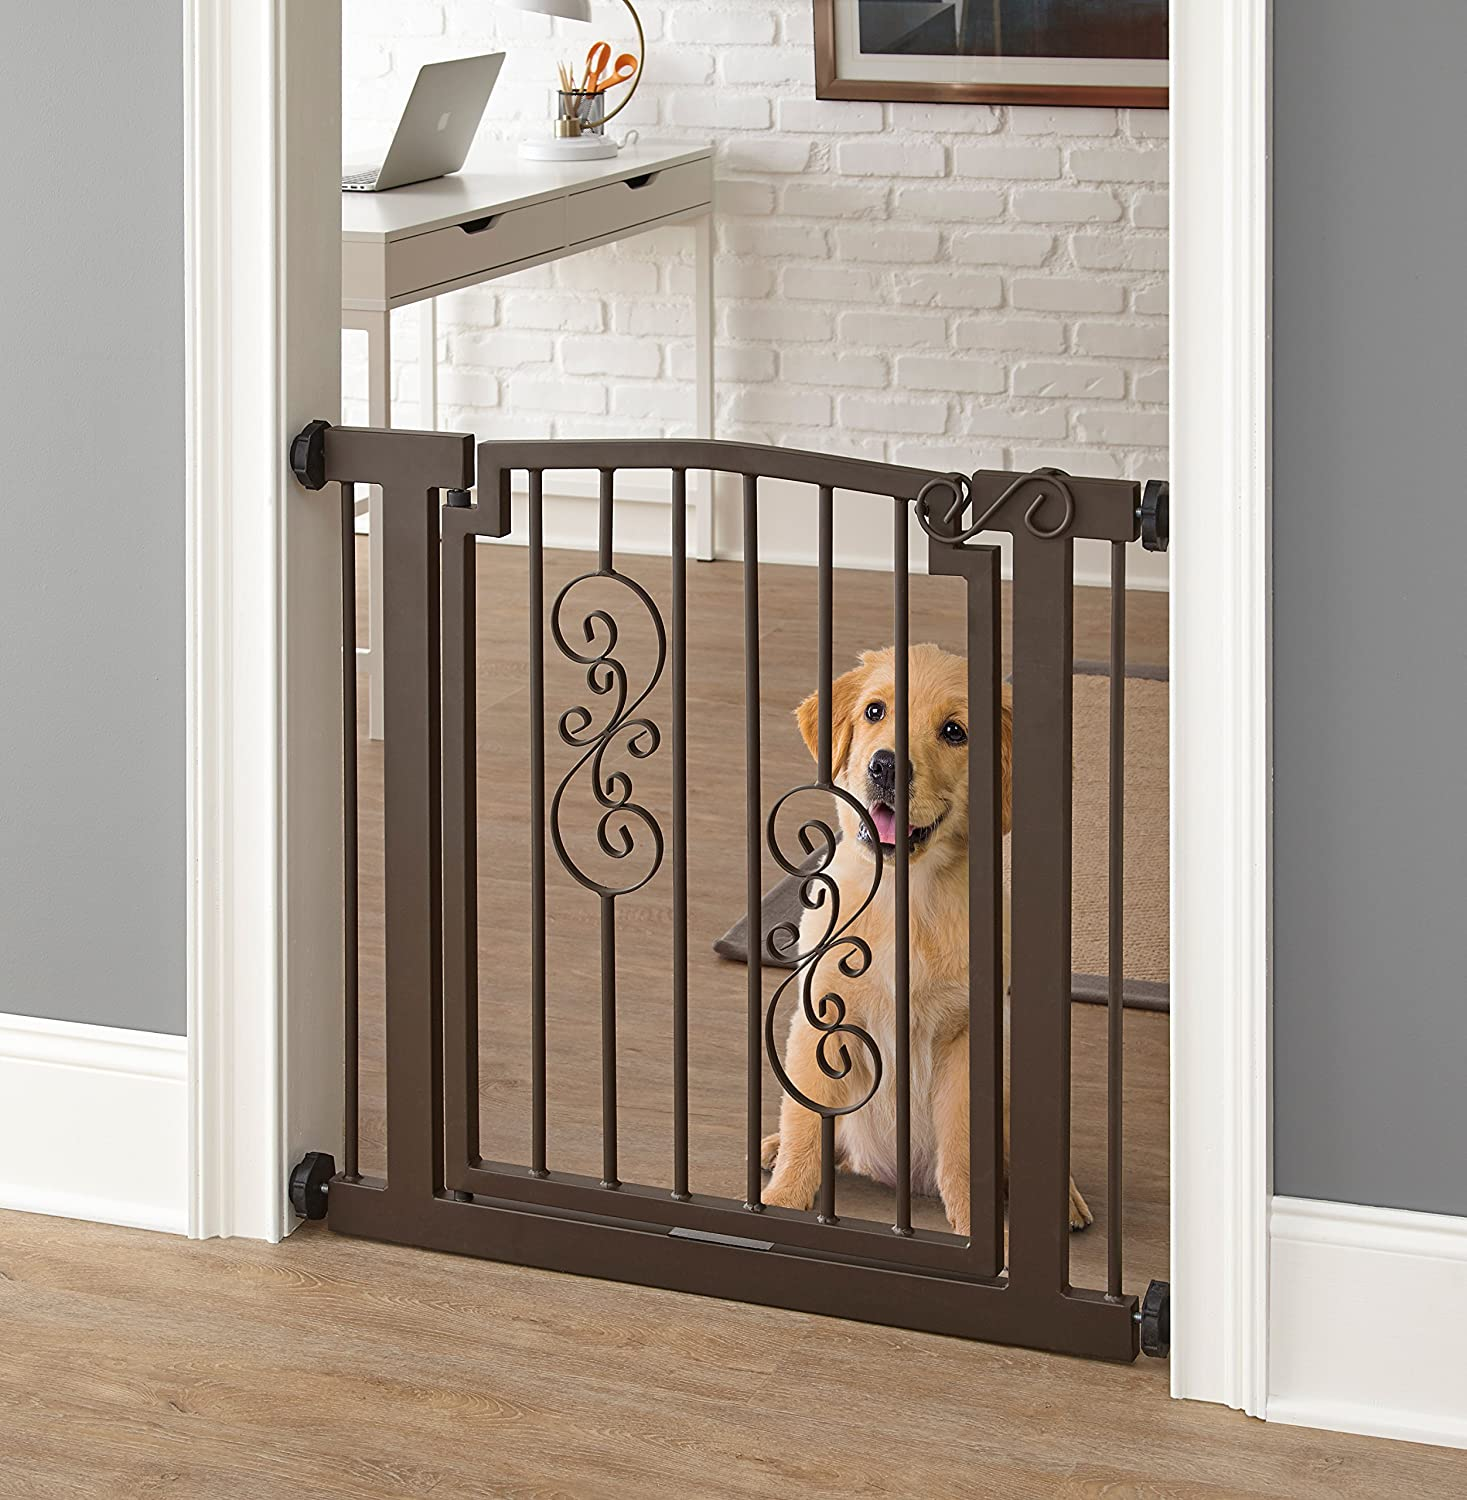 Noblesse Dog Gate – 34 -39.5 Wide 32 Tall – Indoor Pet Barrier, Walk Through Swinging Door, Extra Wide, Black. Pressure Mounted, Expandable. Walls, Stairs. Best Dog Gate.